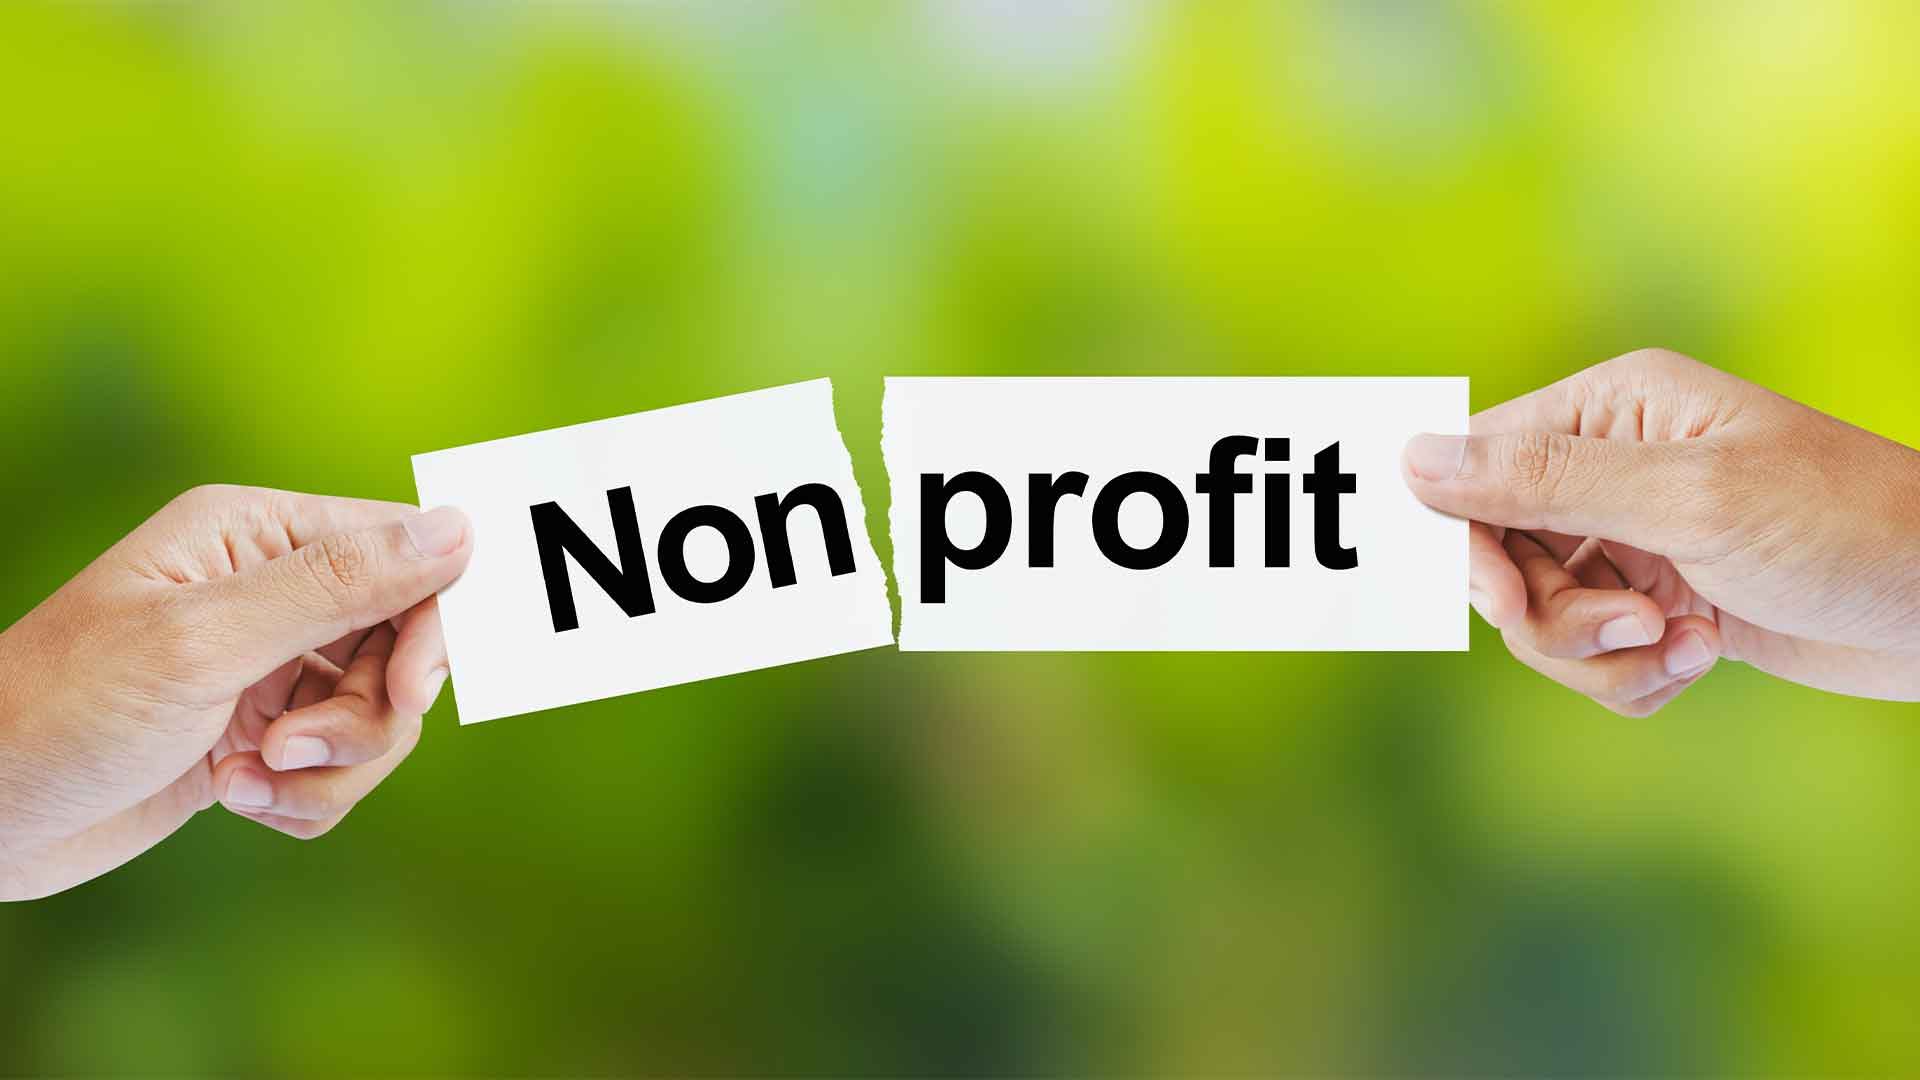 Section 8 Company – Non-Profit Company